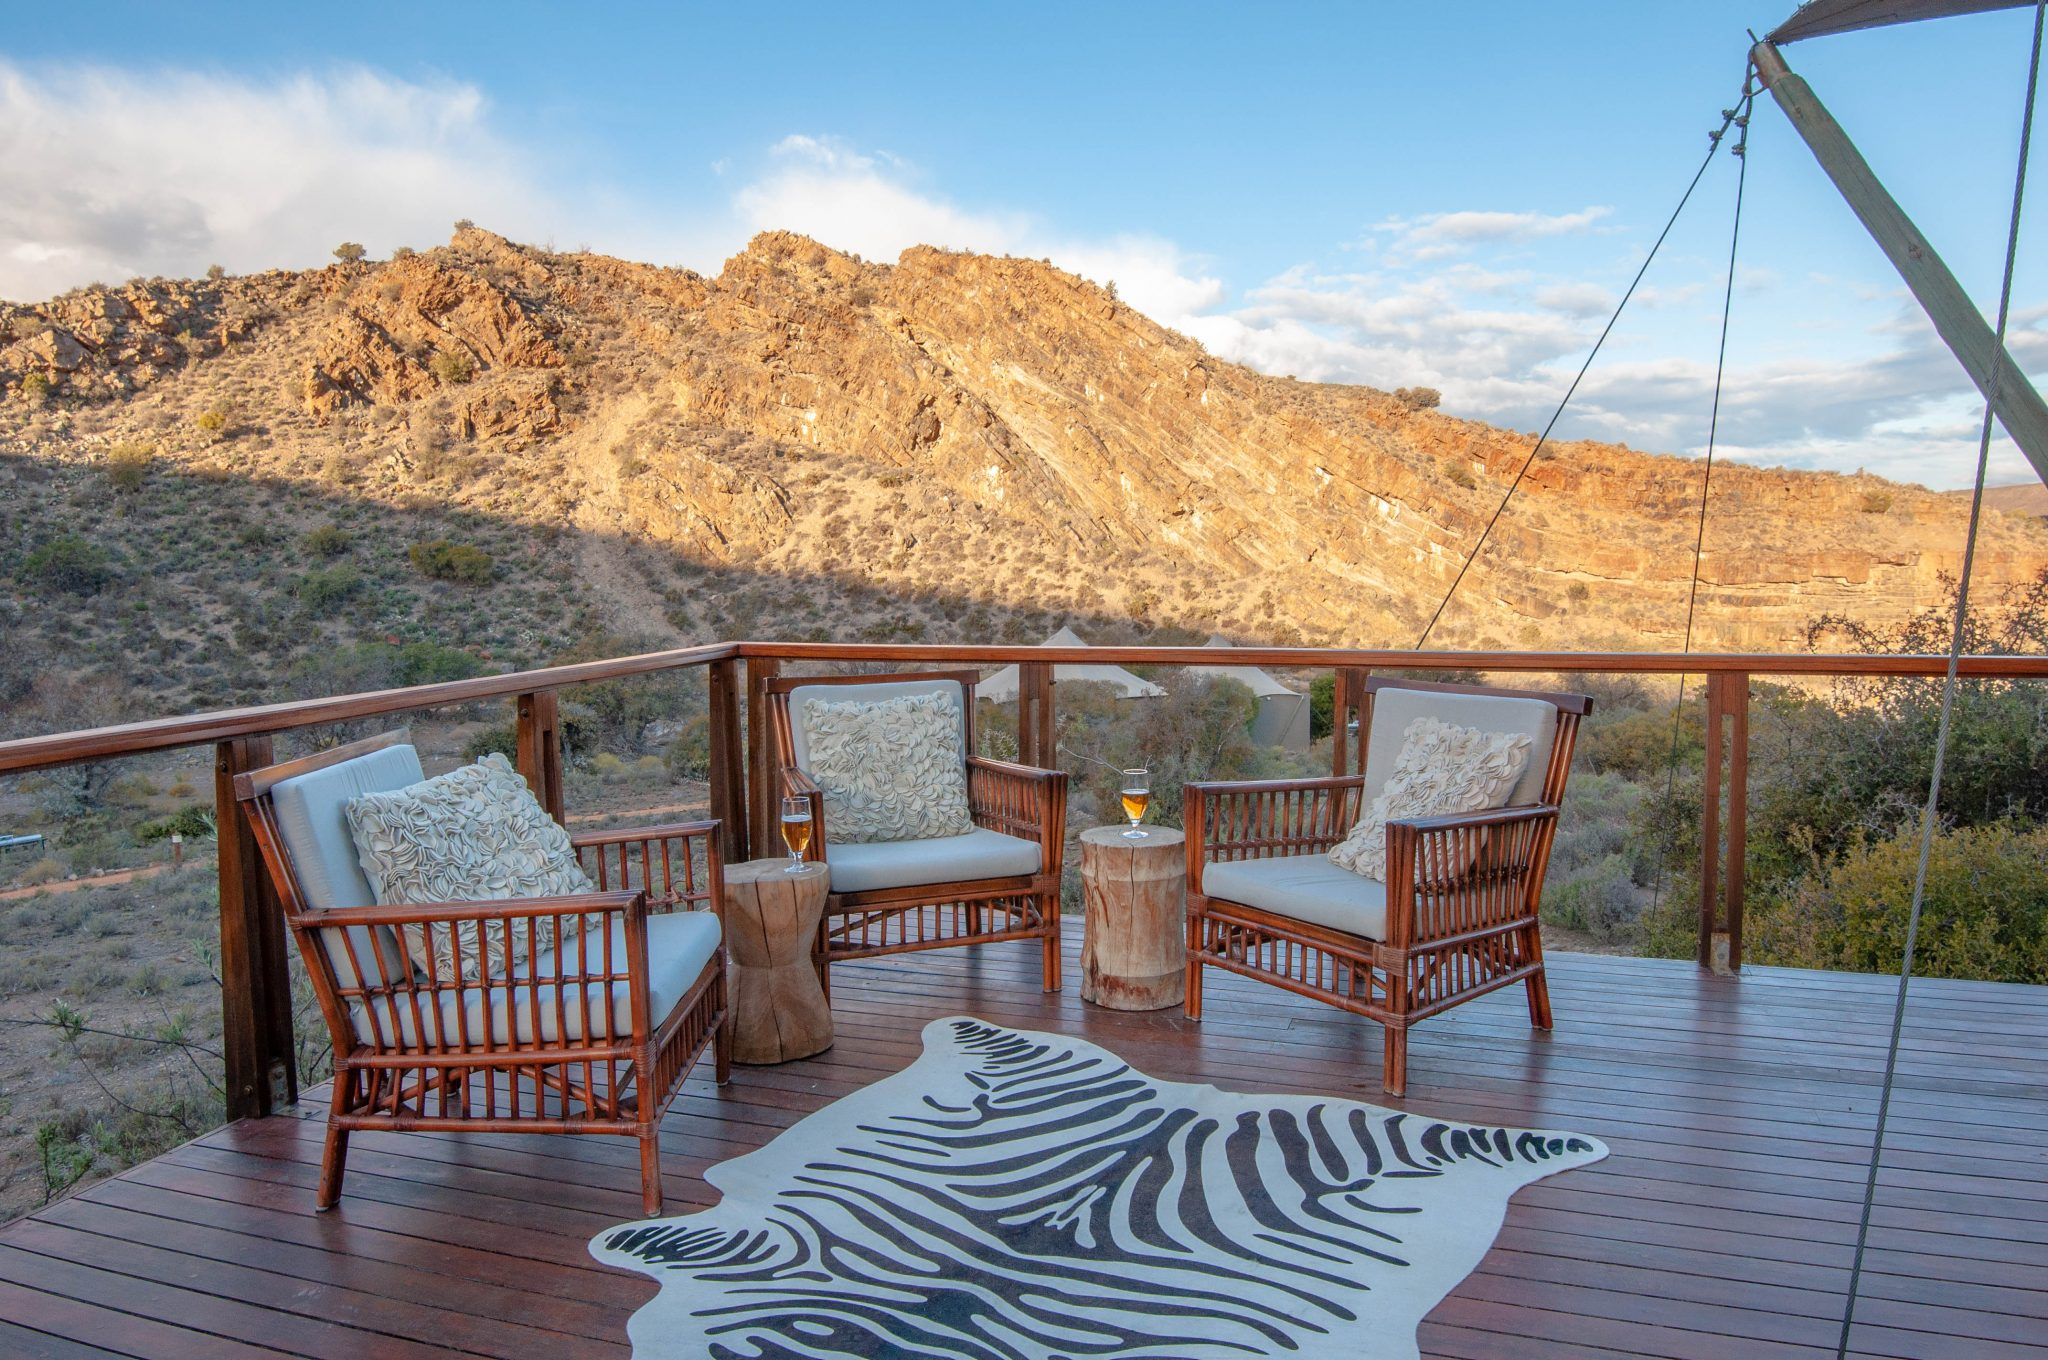 Enjoy the views from the deck at Dwyka Tented Camp